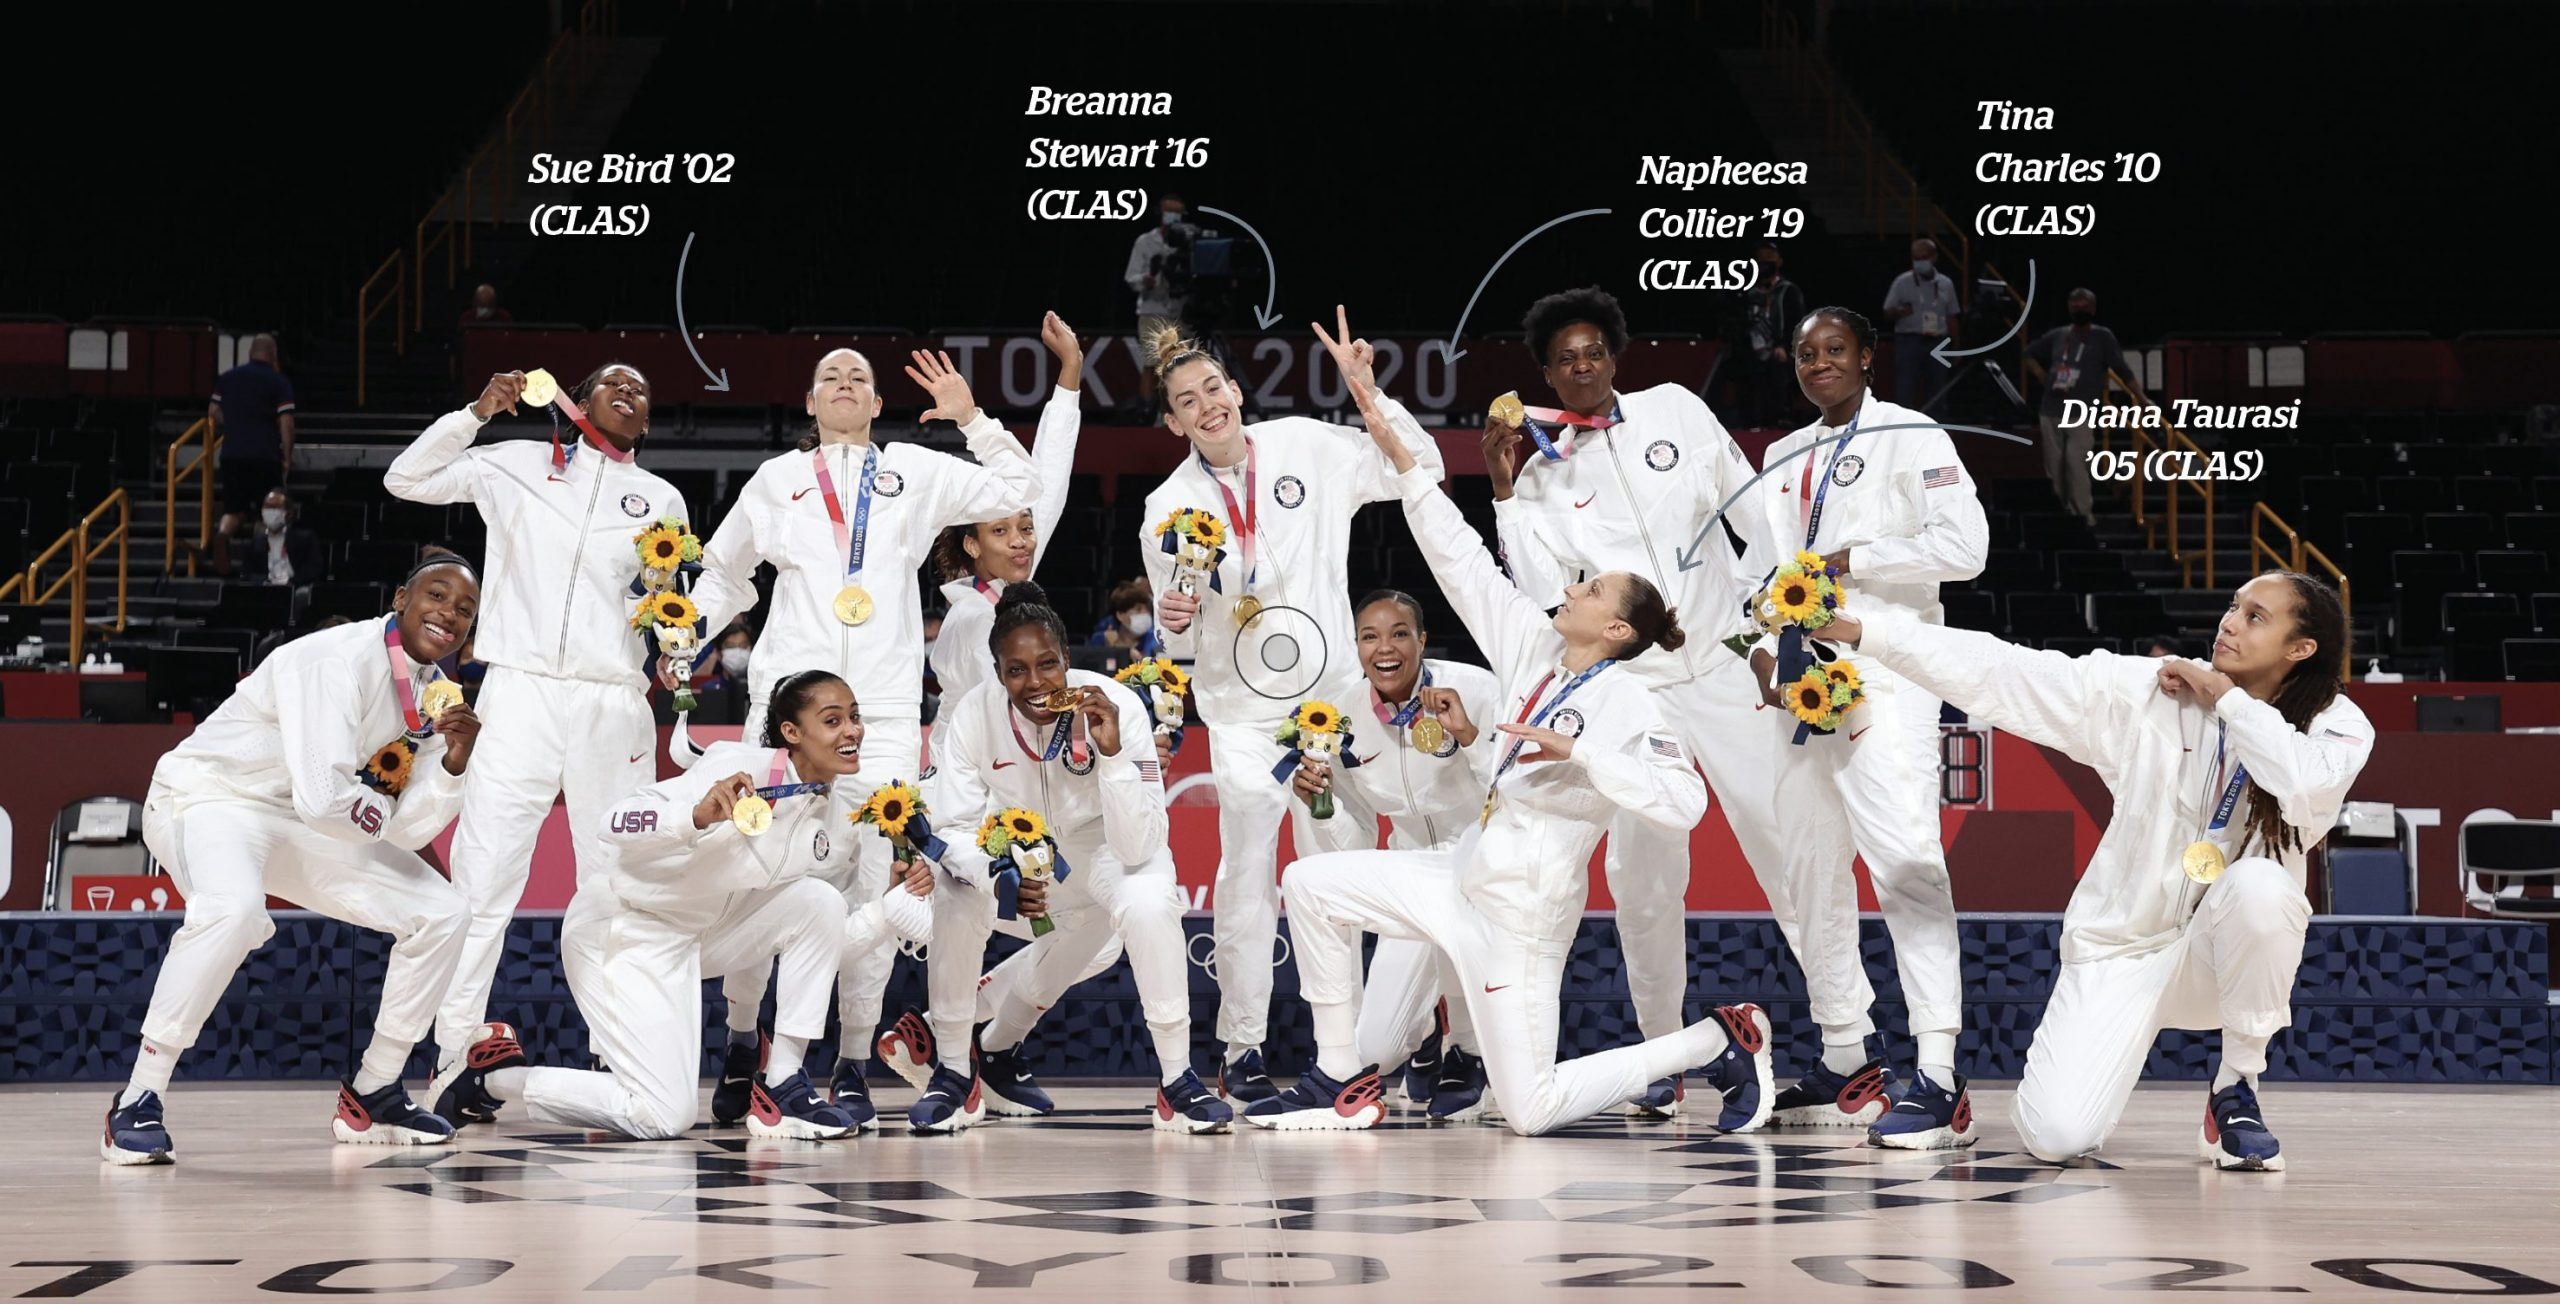 the entire USA women's Basetball team posing with sunflowers and smiles in the Tokyo 2020 olympics after winning the gold